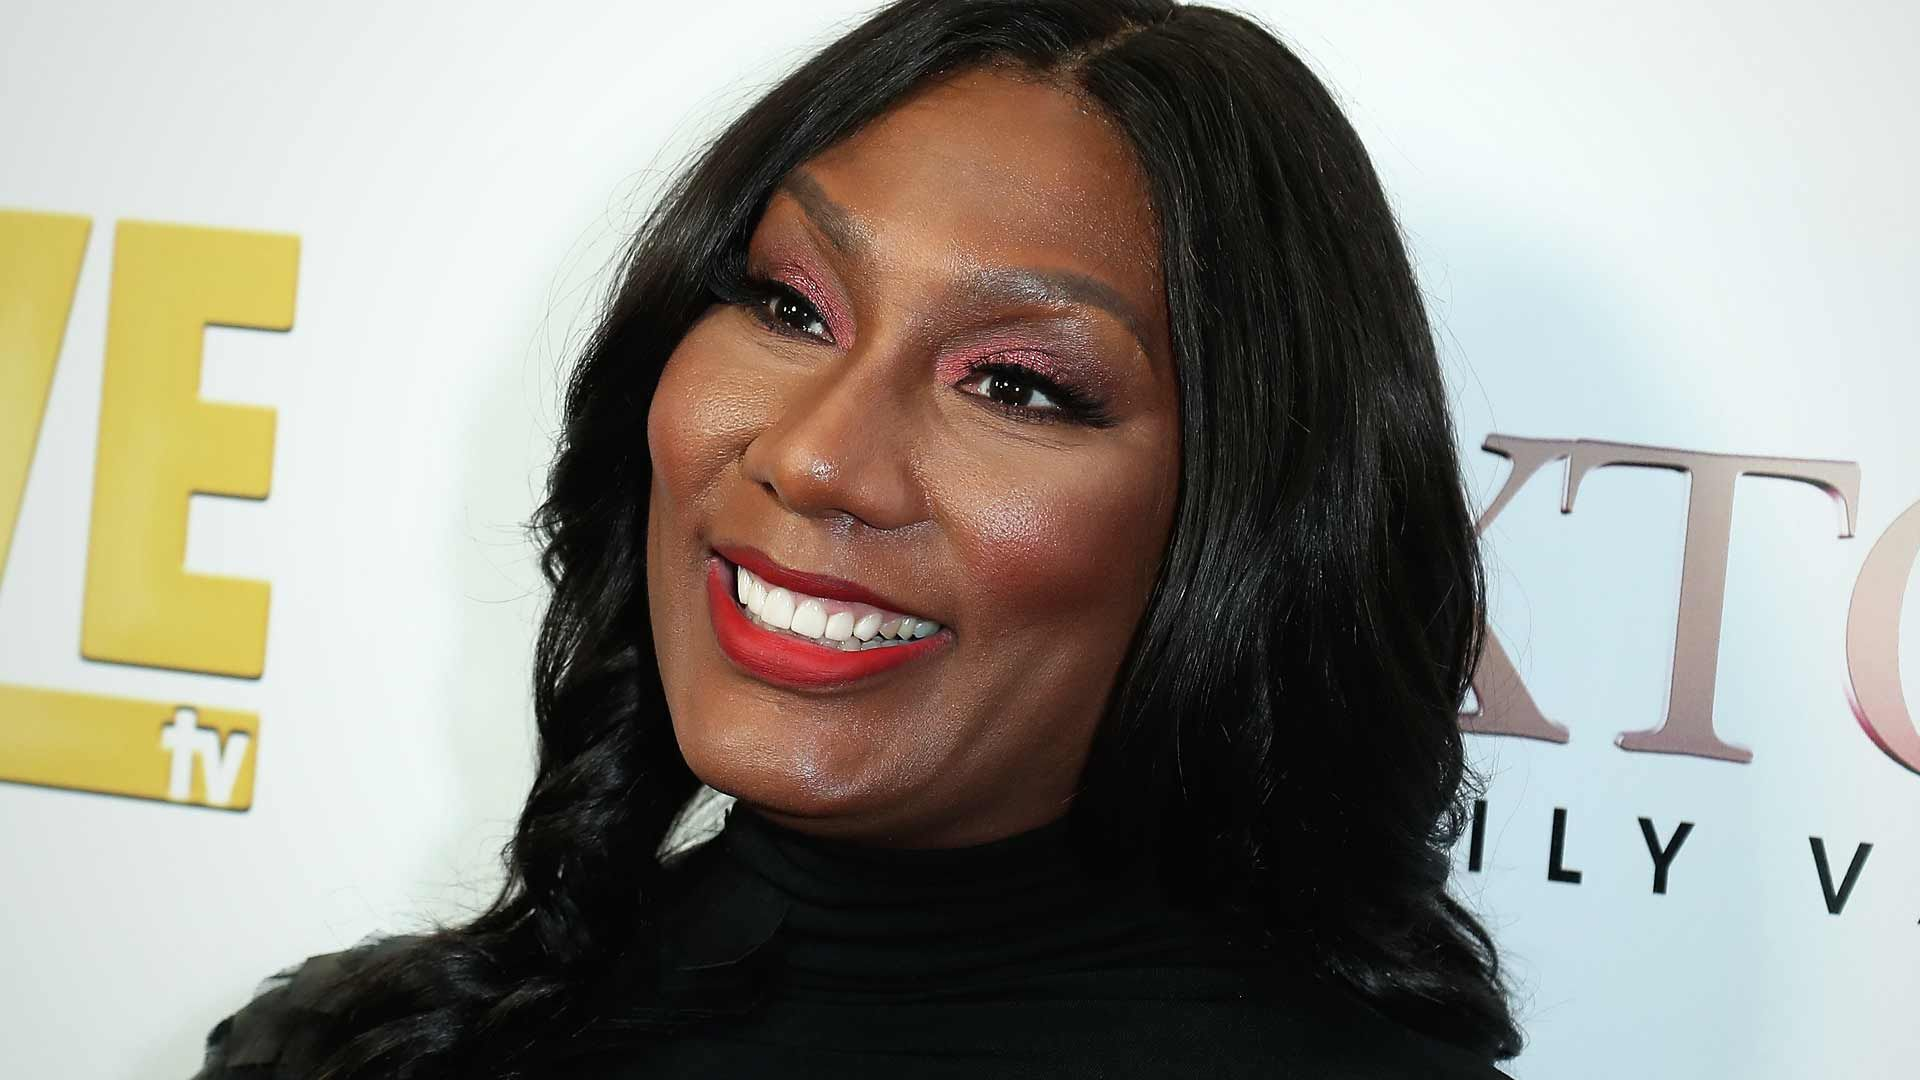 Towanda Braxton Shares A Photo From Her Date Night With Her King